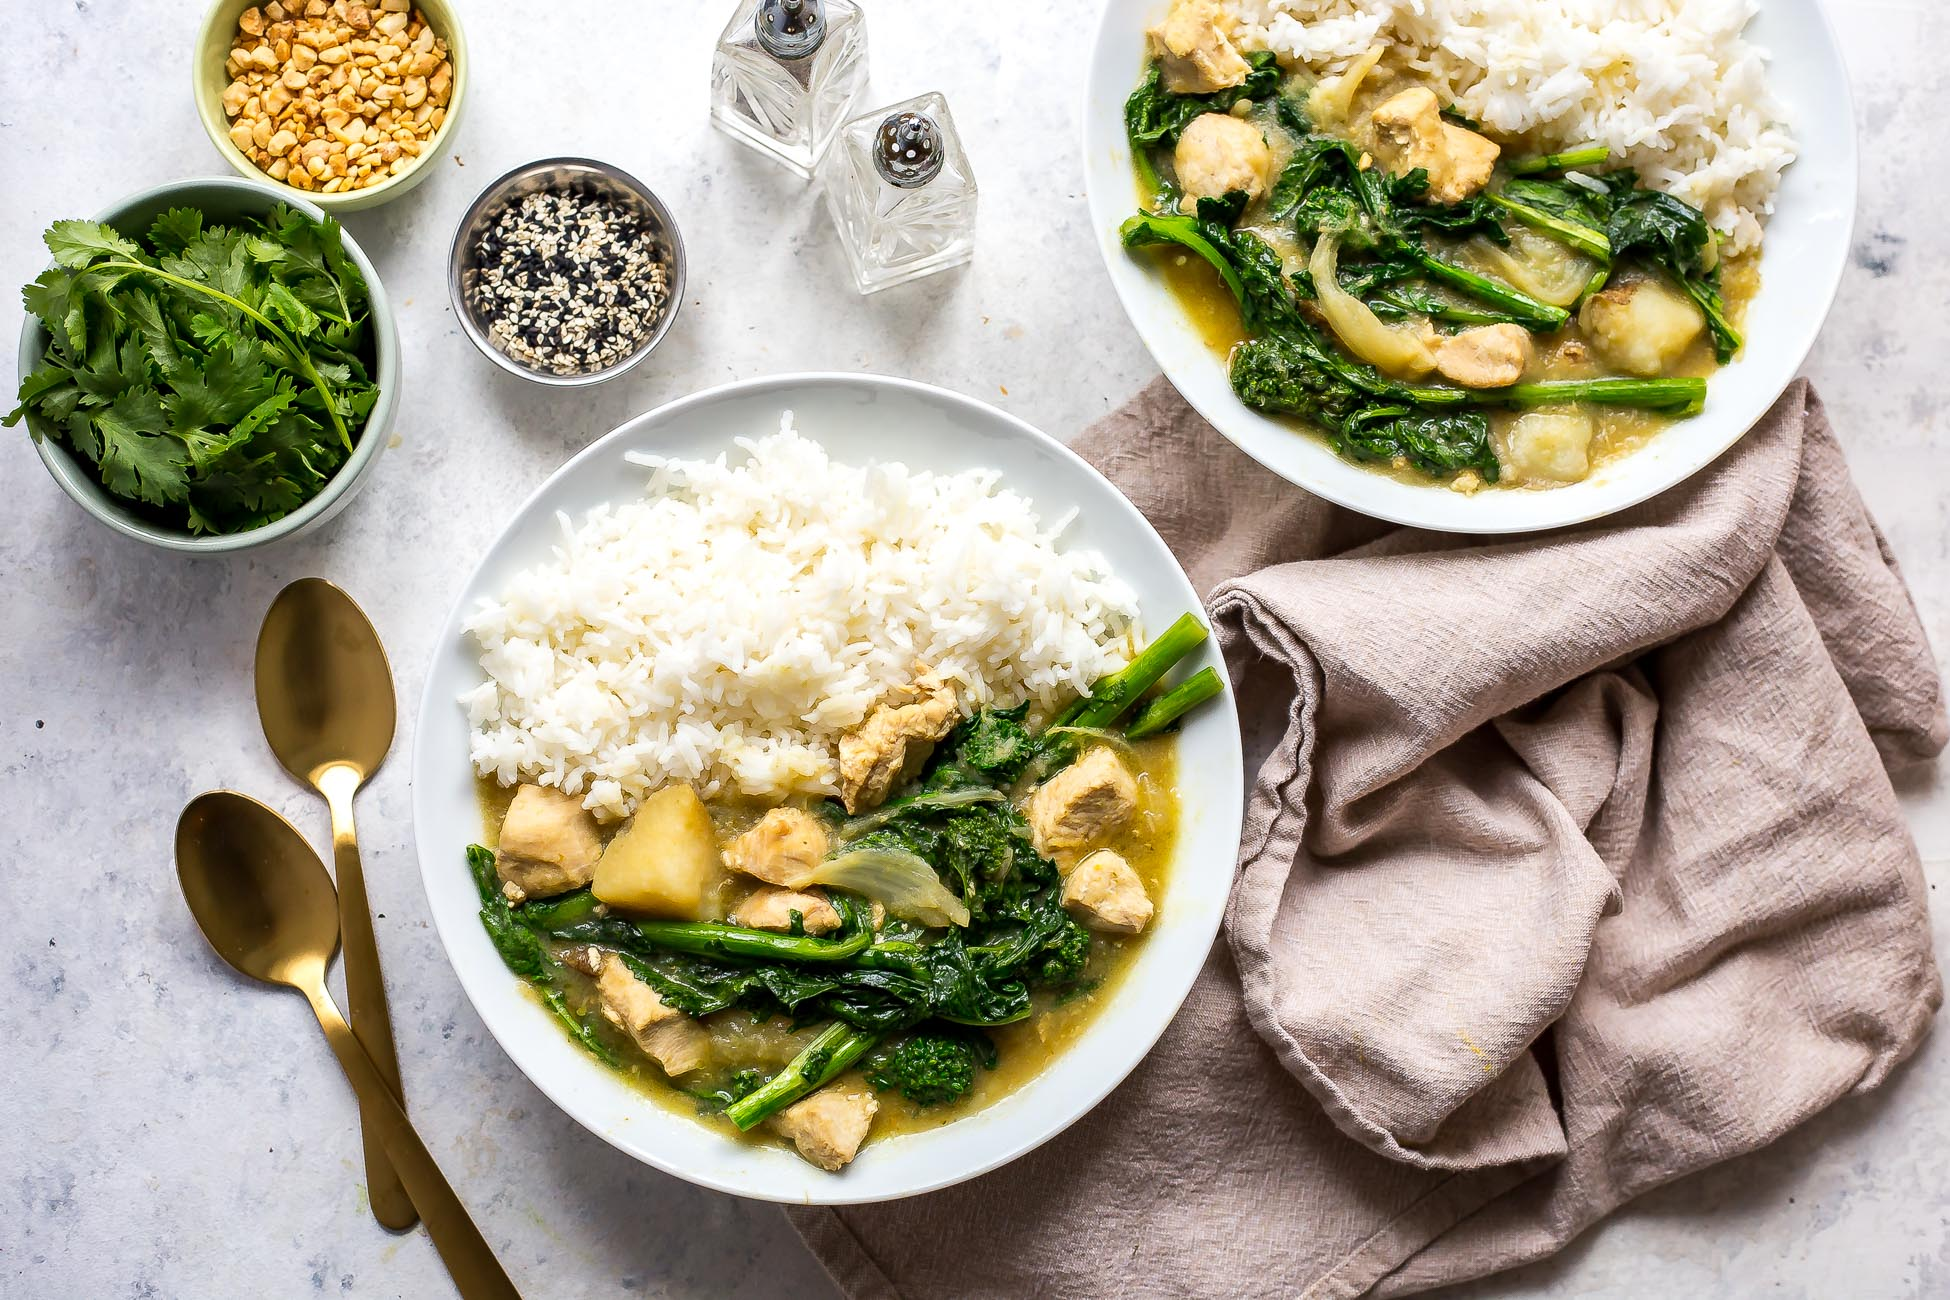 Instant Pot Thai Green Curry with Broccoli Rabe and Chicken